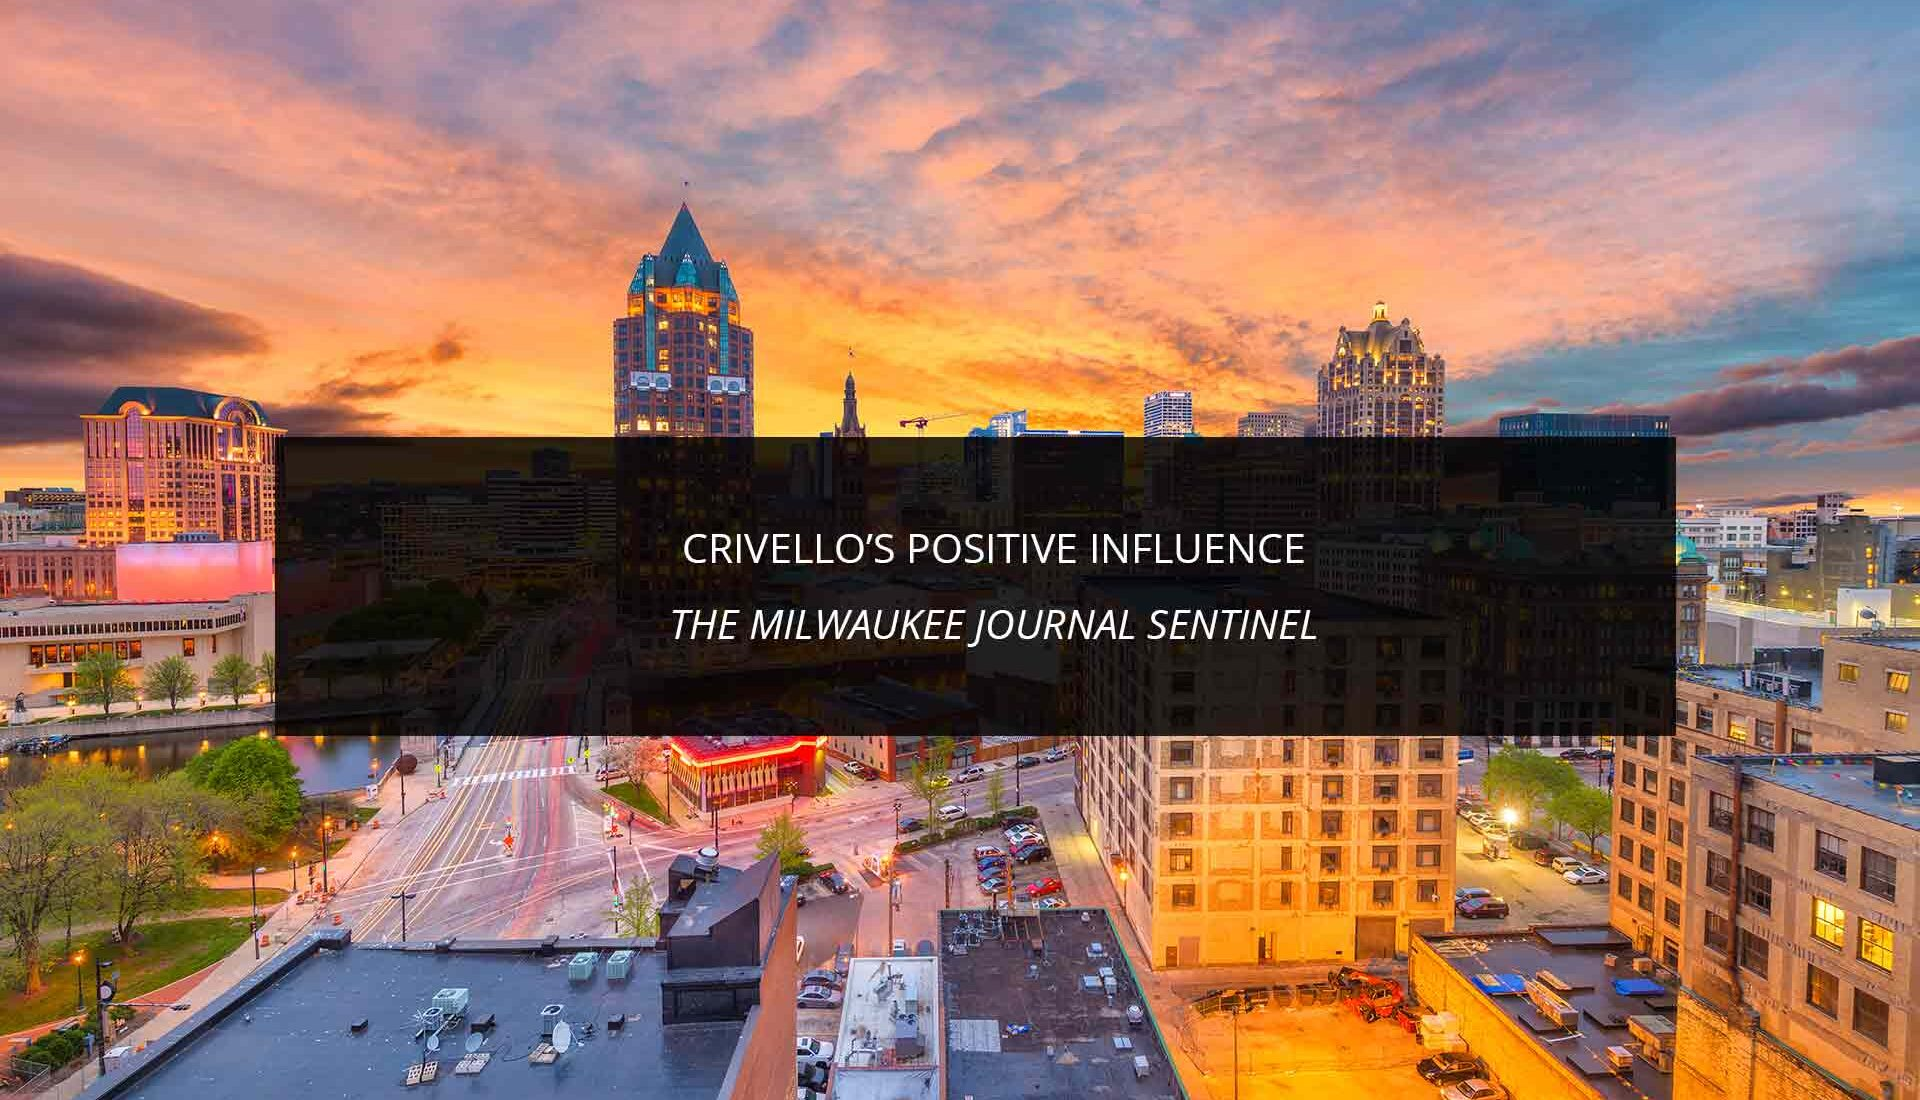 Crivello's Positive Influence